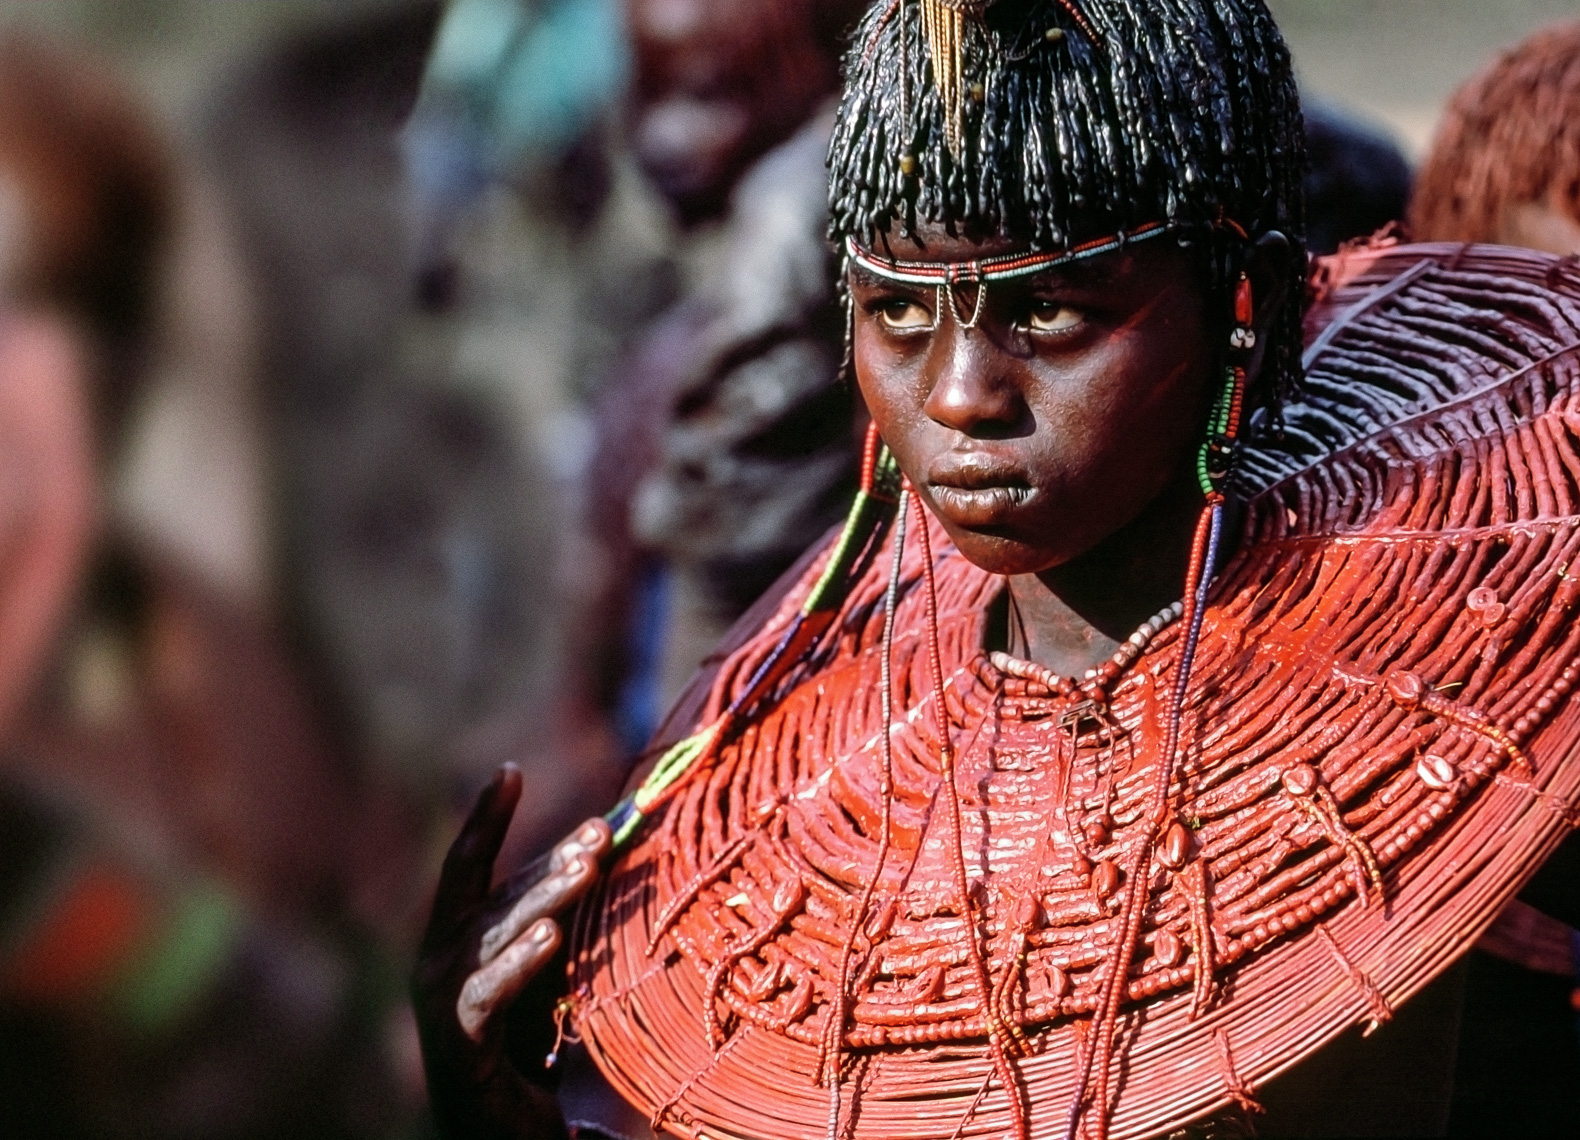 Pokot Female Initiate in Ochered Necklace, Kenya